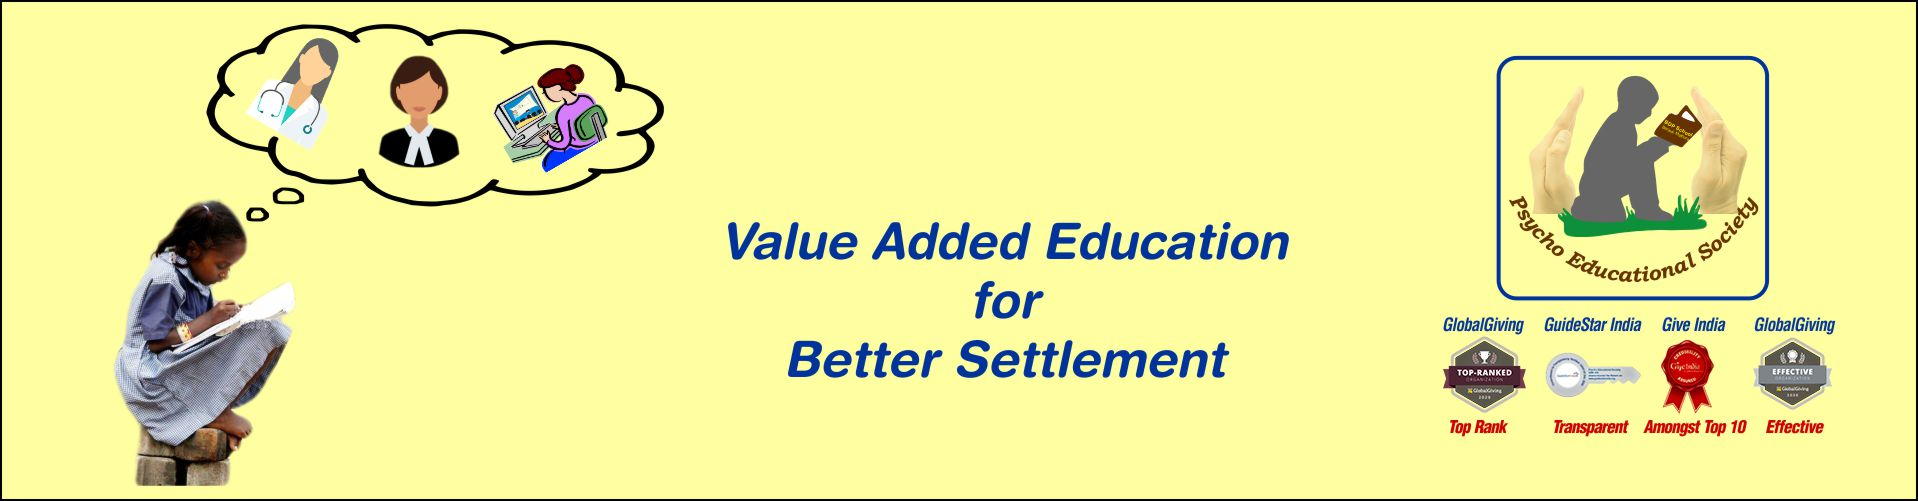 Value-Added-Education